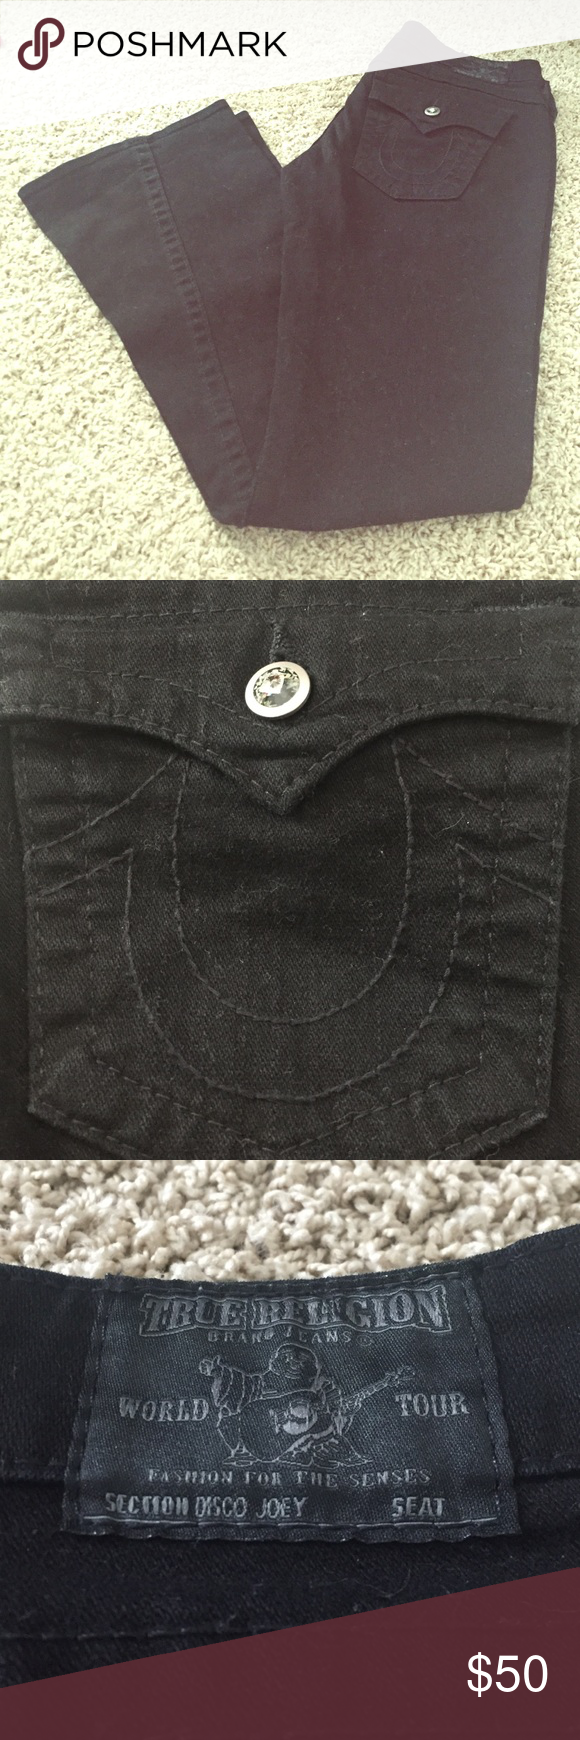 "True Religion Black Disco Joey Jeans Excellent, used condition. Smoke free home. No rips, stains, or odors. Has the cutest buttons/accents! 98% cotton and 2% spandex. Size 29. Approximate Inseam: 32"". True Religion Jeans Flare & Wide Leg"